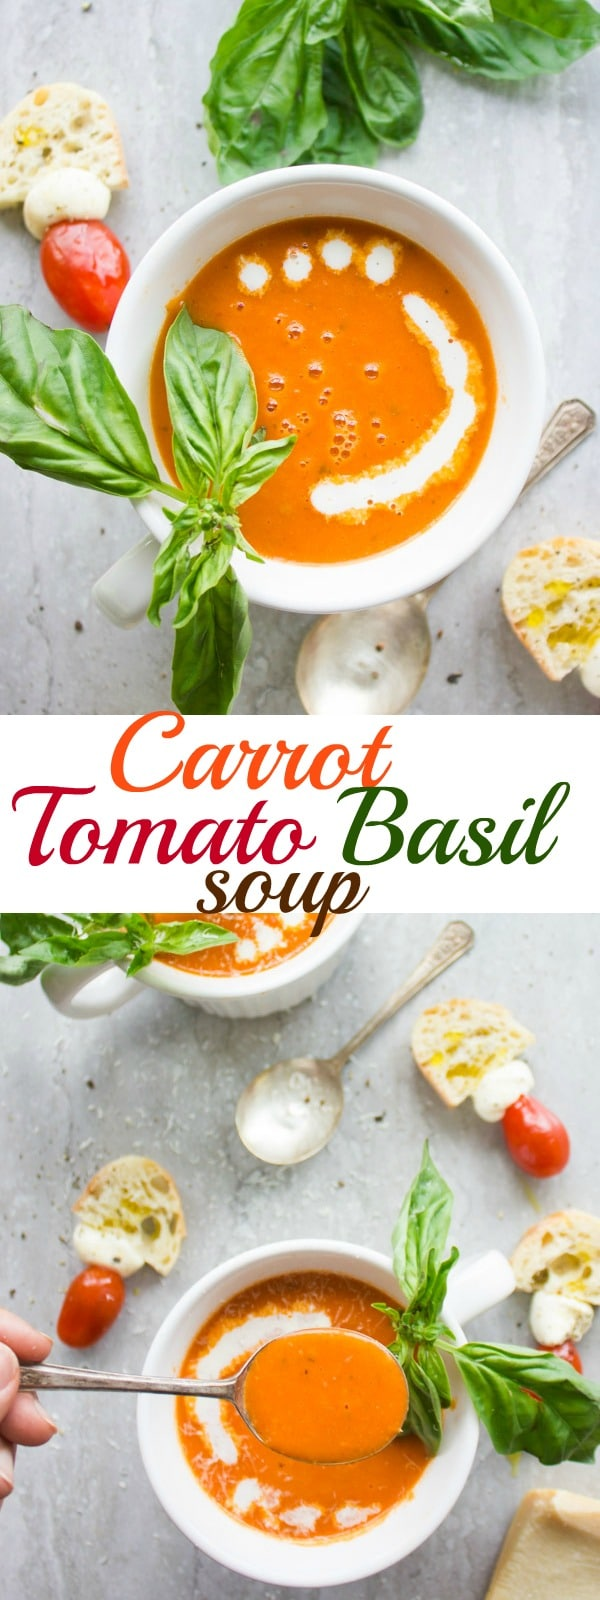 Creamy Carrot Tomato Basil Soup | Try this Creamy Tomato Basil Soup full of incredible flavours - naturally thickened by roasting the vegetables in the oven and pureeing them! Make this easy soup with stock for a healthy vegan lunch or use cream for an extra rich and indulgent version. #soup, #vegetarian, #creamy, #healthy, #vegetable, #roasted, #starter